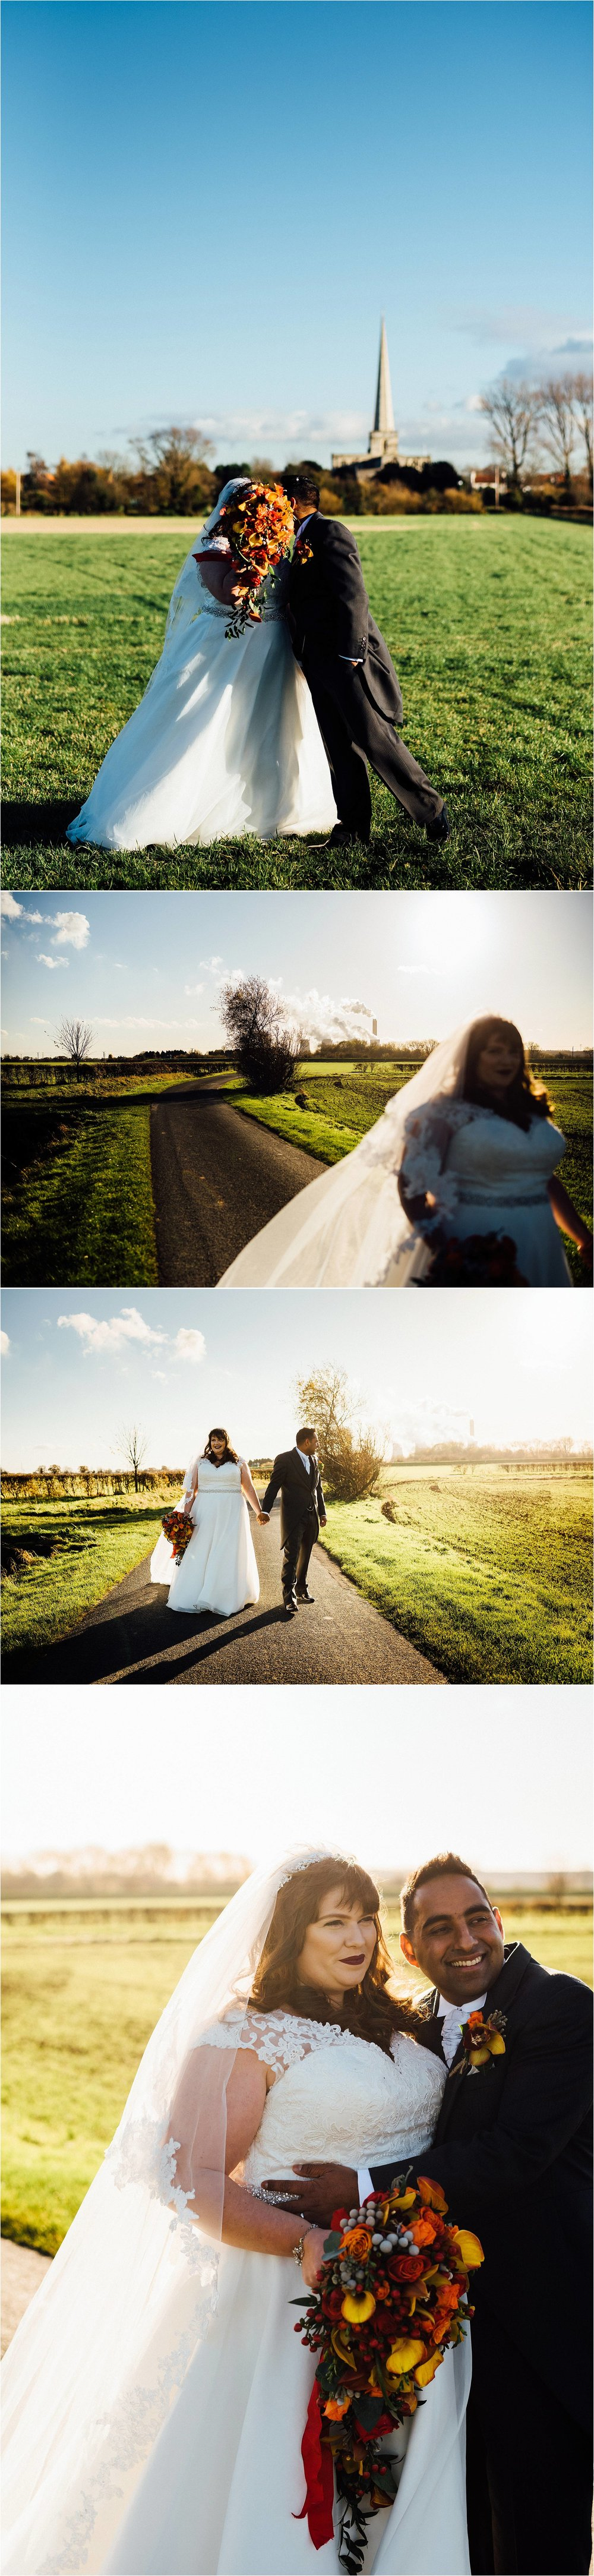 Leicestershire Wedding Photographer_0068.jpg